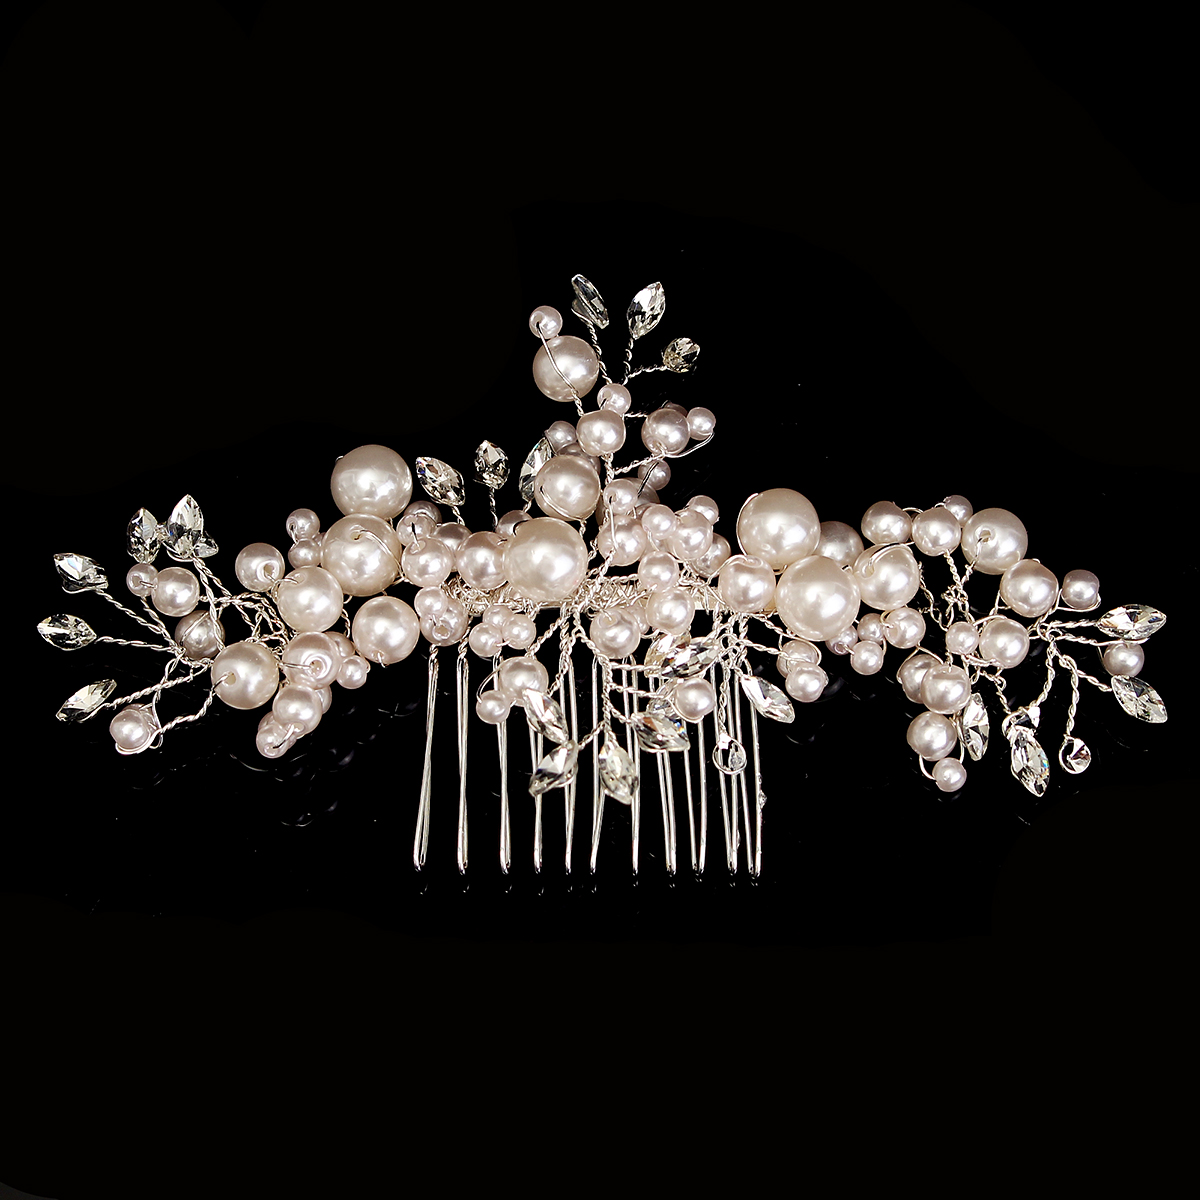 Buy Bride Rhinestone Crystal Pearl Hair Comb Elegant Wedding Prom Bridal Headpiece